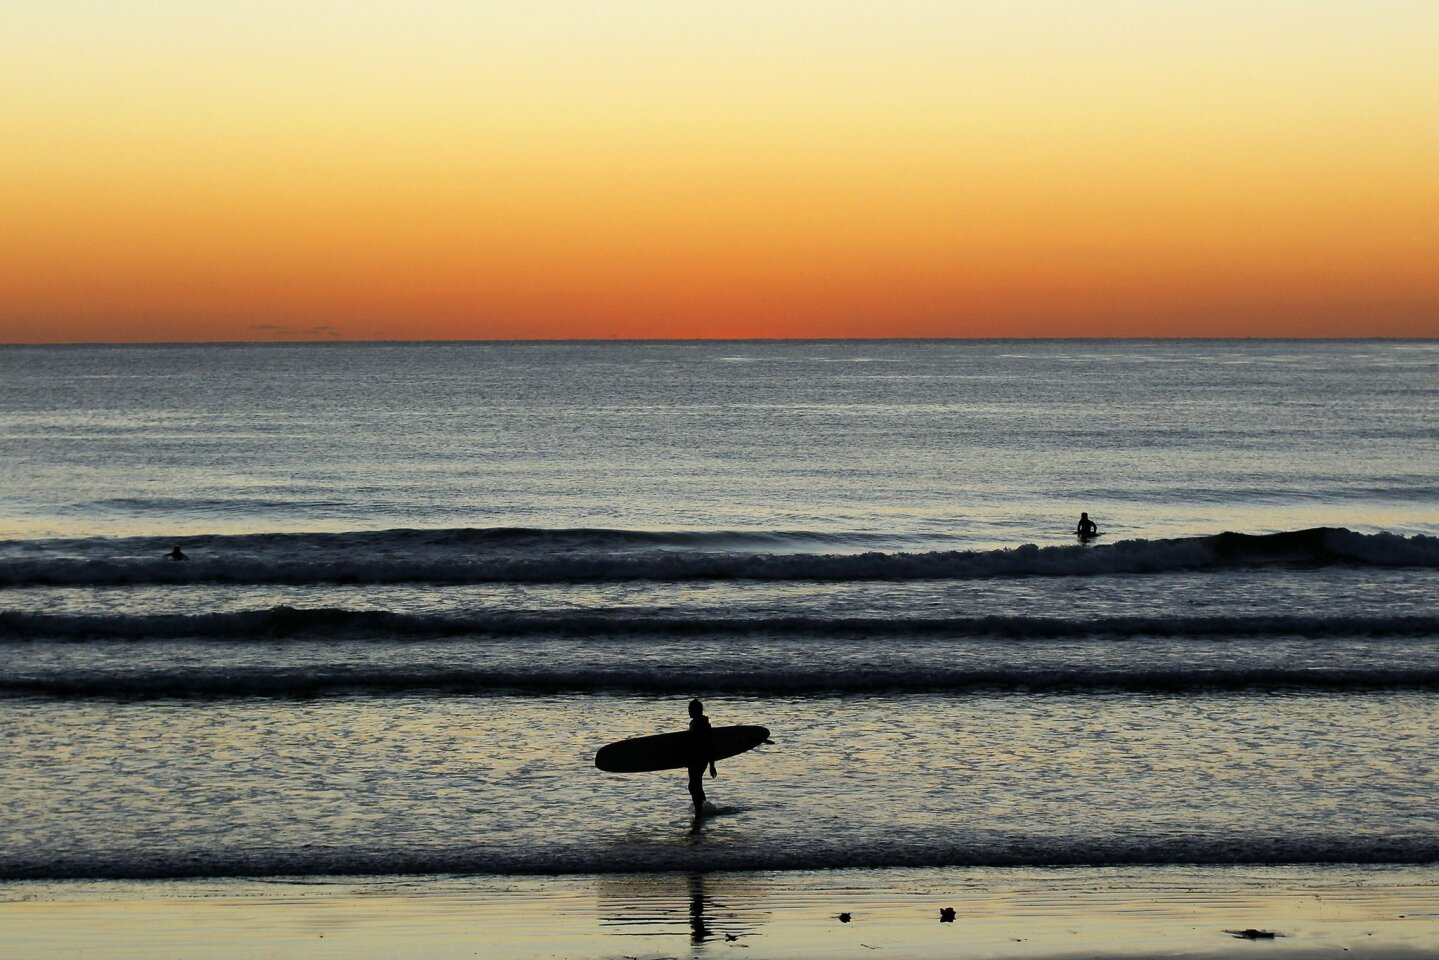 A surfer gets out of the water at Tourmaline Surfing Park in La Jolla in January.